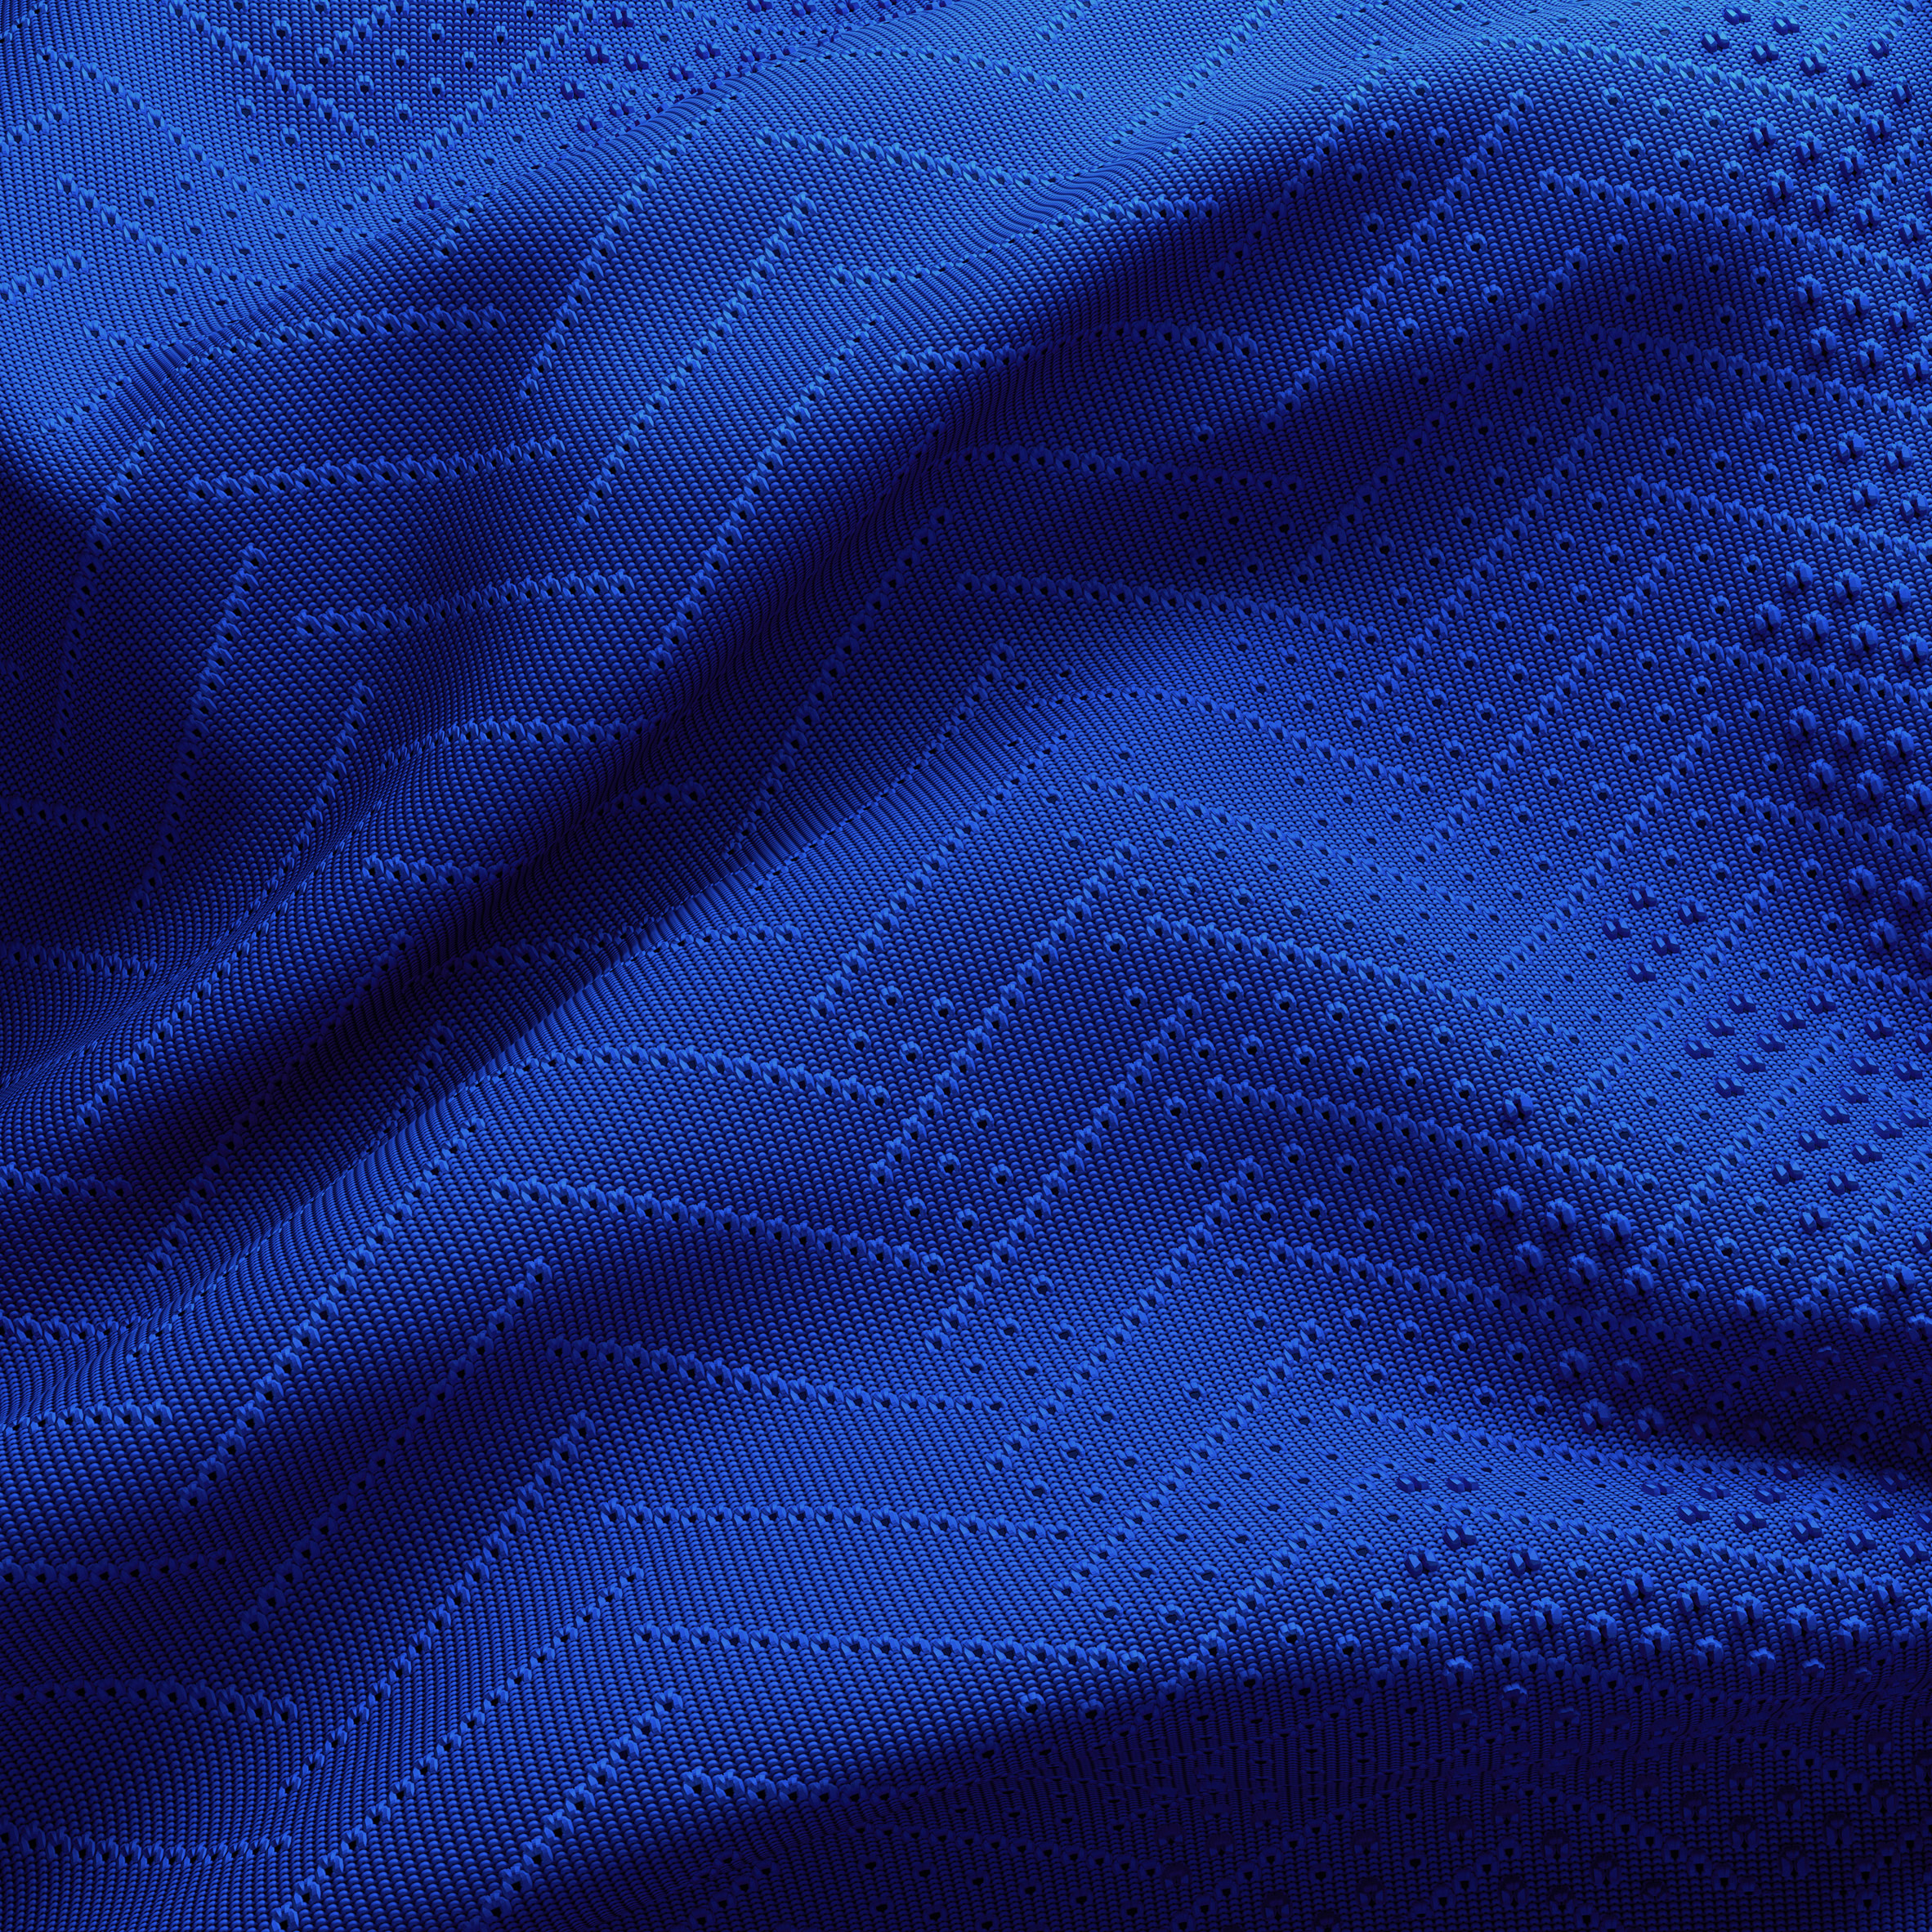 Nike reveals herringbone-patterned Chelsea kit informed by Saville Row